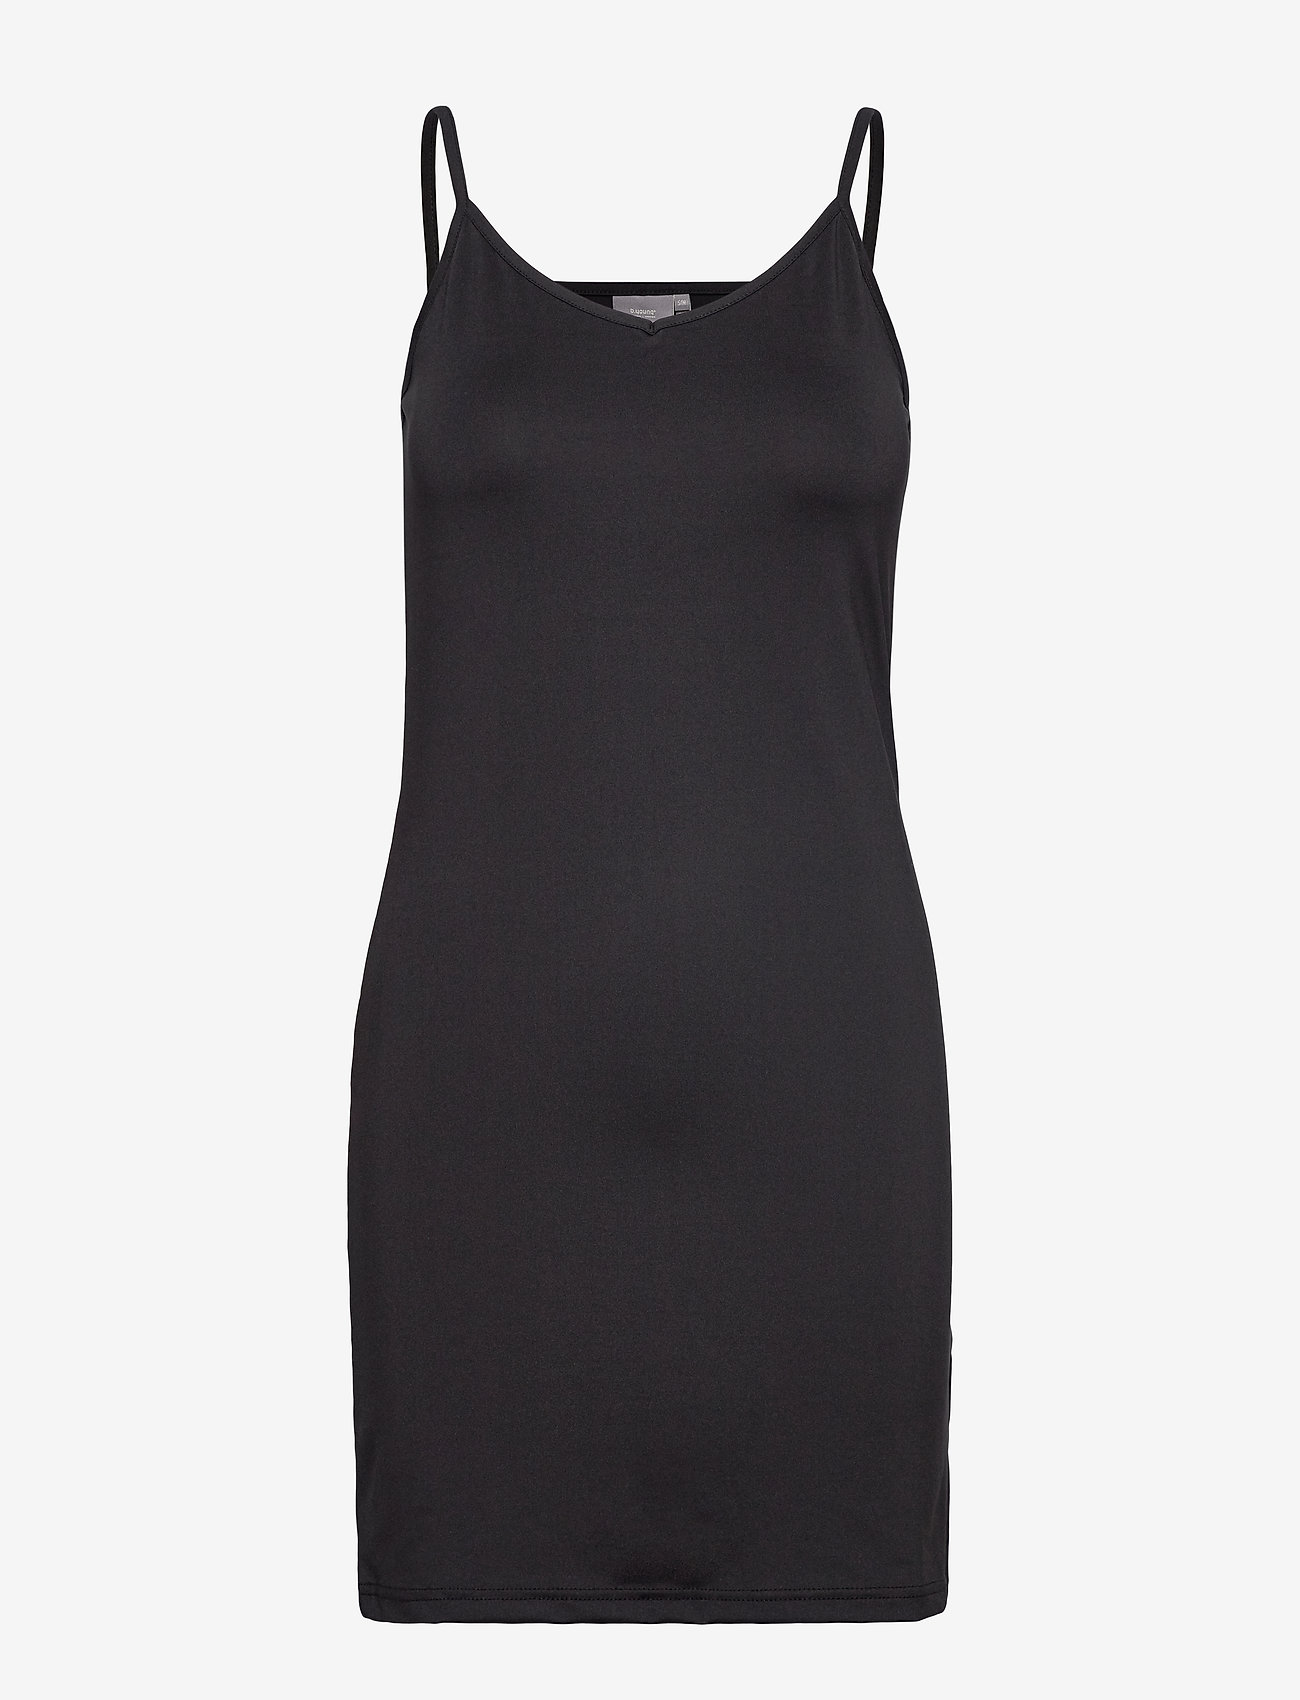 b.young - BYIANE UNDERDRESS - JERSEY - short dresses - black - 0